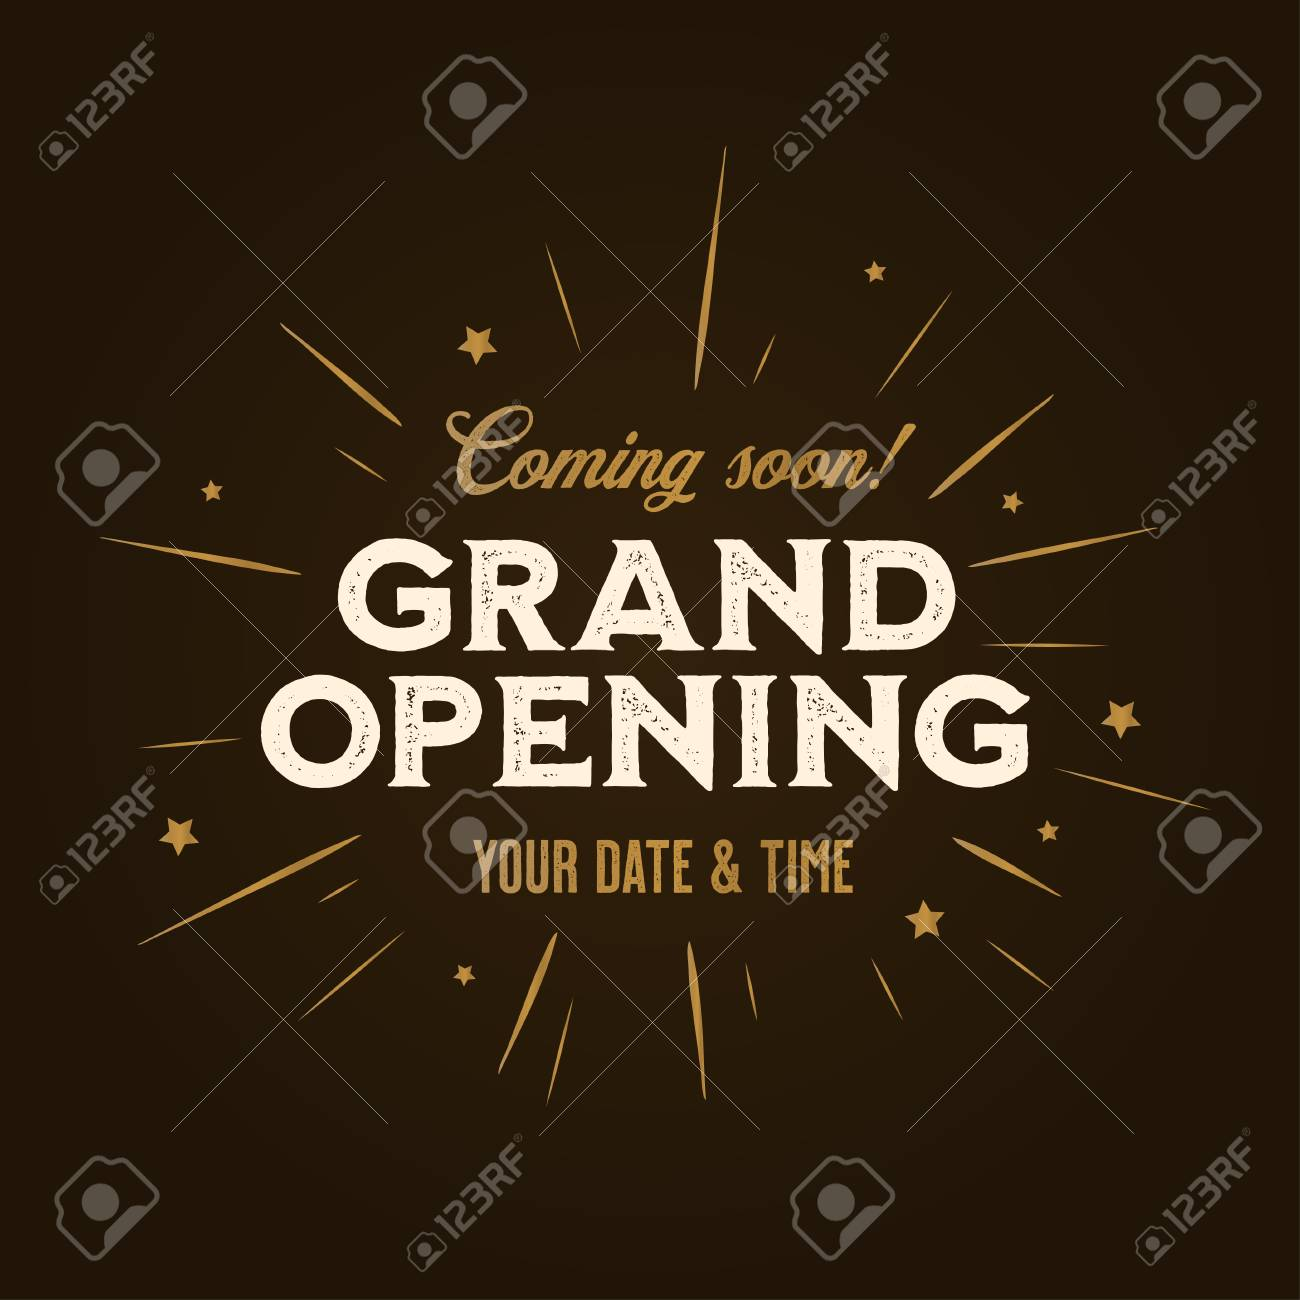 Grand opening template, banner, poster. Lettering design element for opening ceremony. Retro style typography. Vector vintage illustration. - 110505277